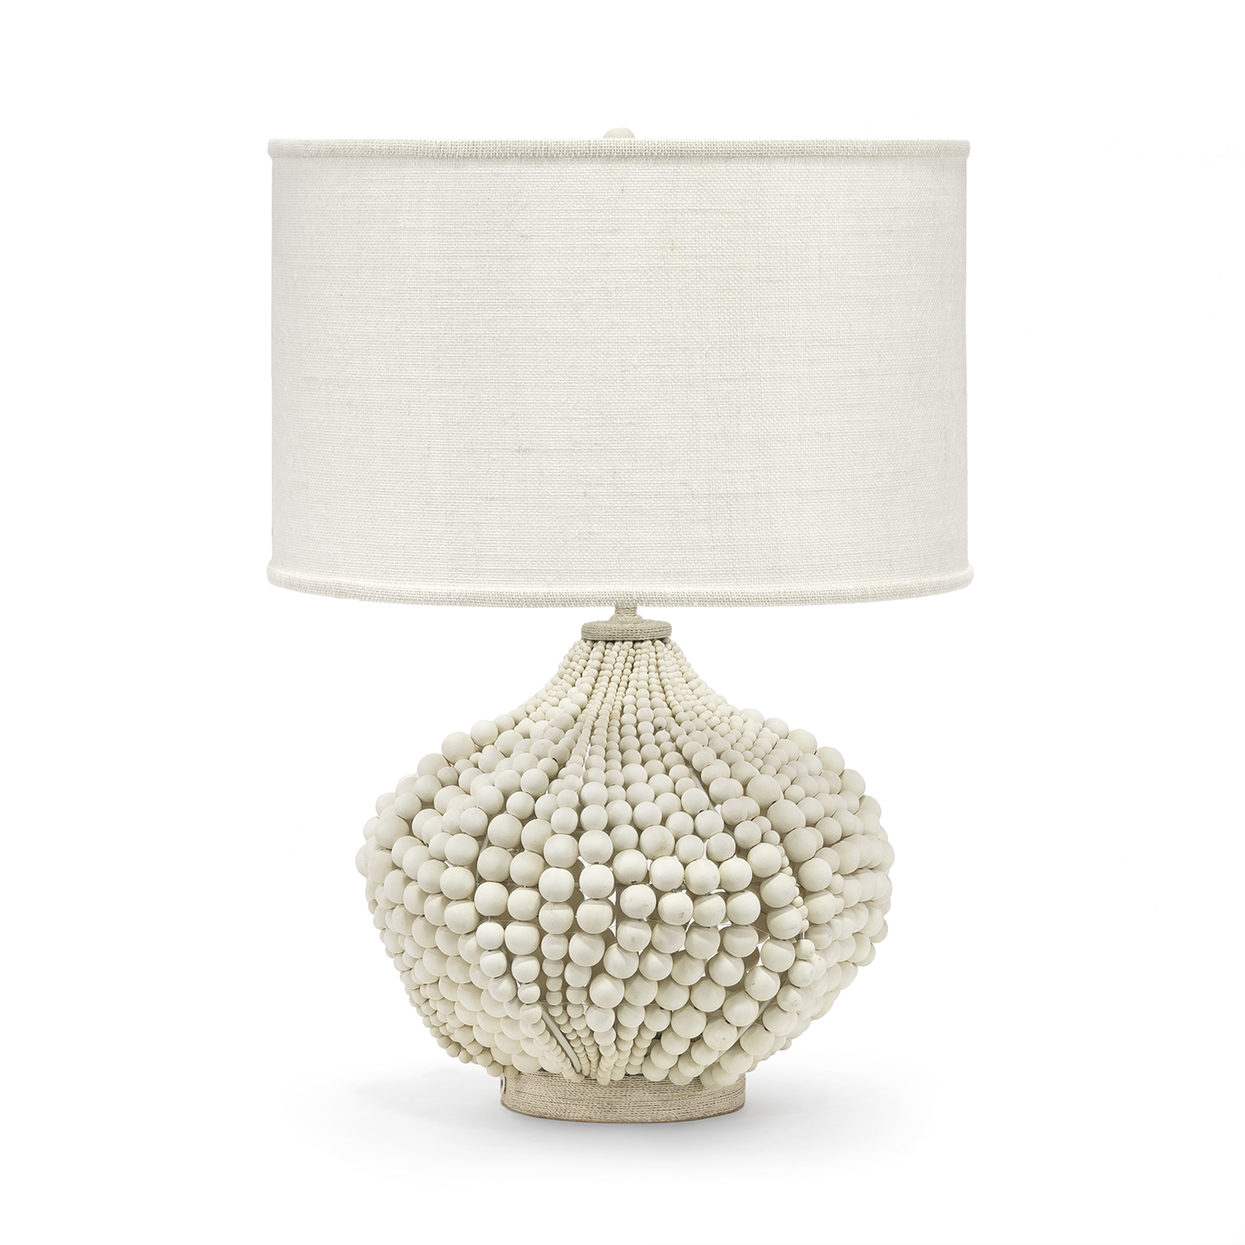 Wood Bead & Abaca Rope Lamp-$1,178.00